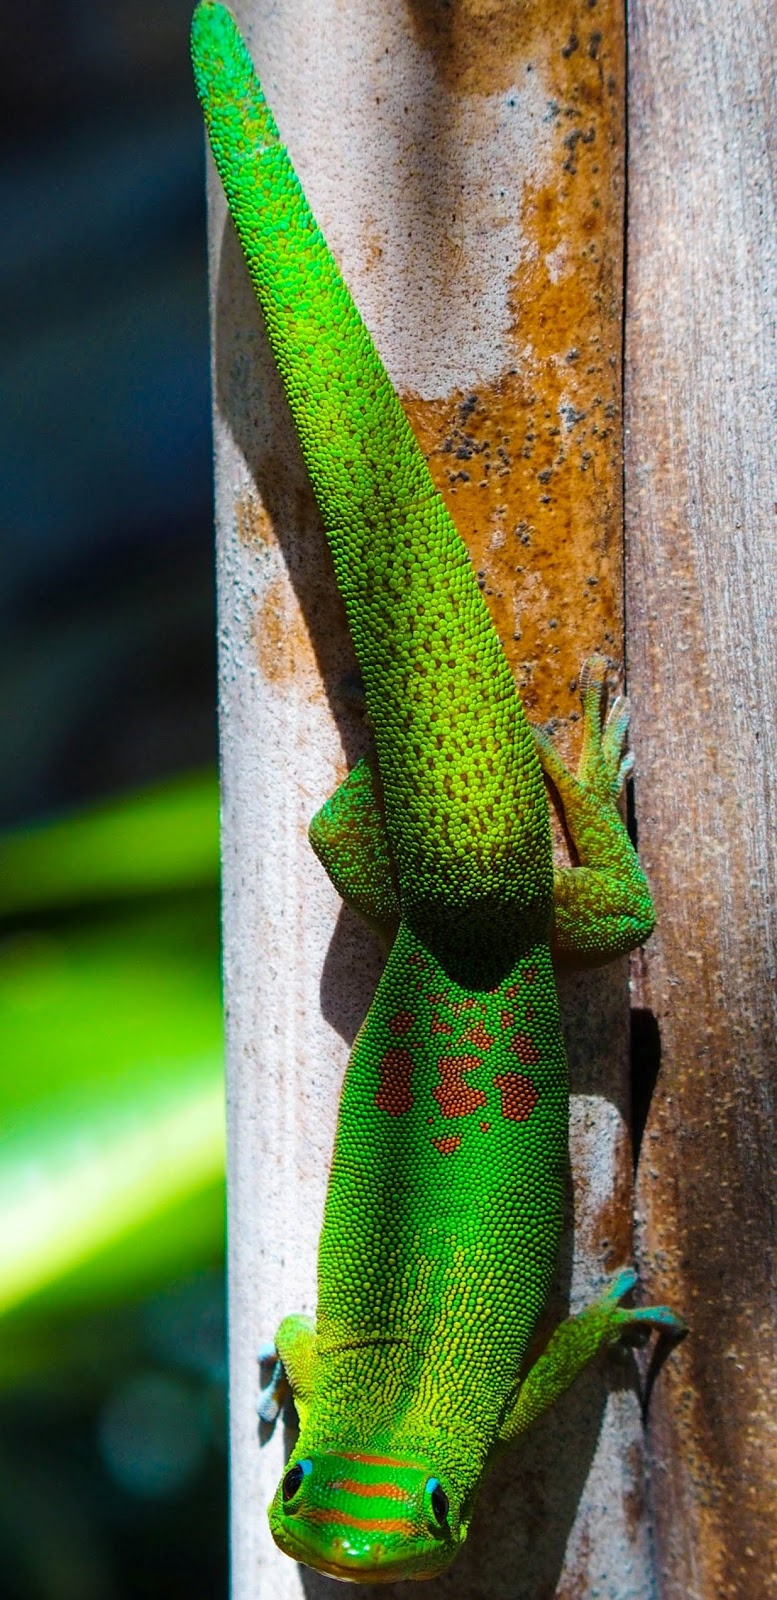 Photo of a green gecko hawaii.